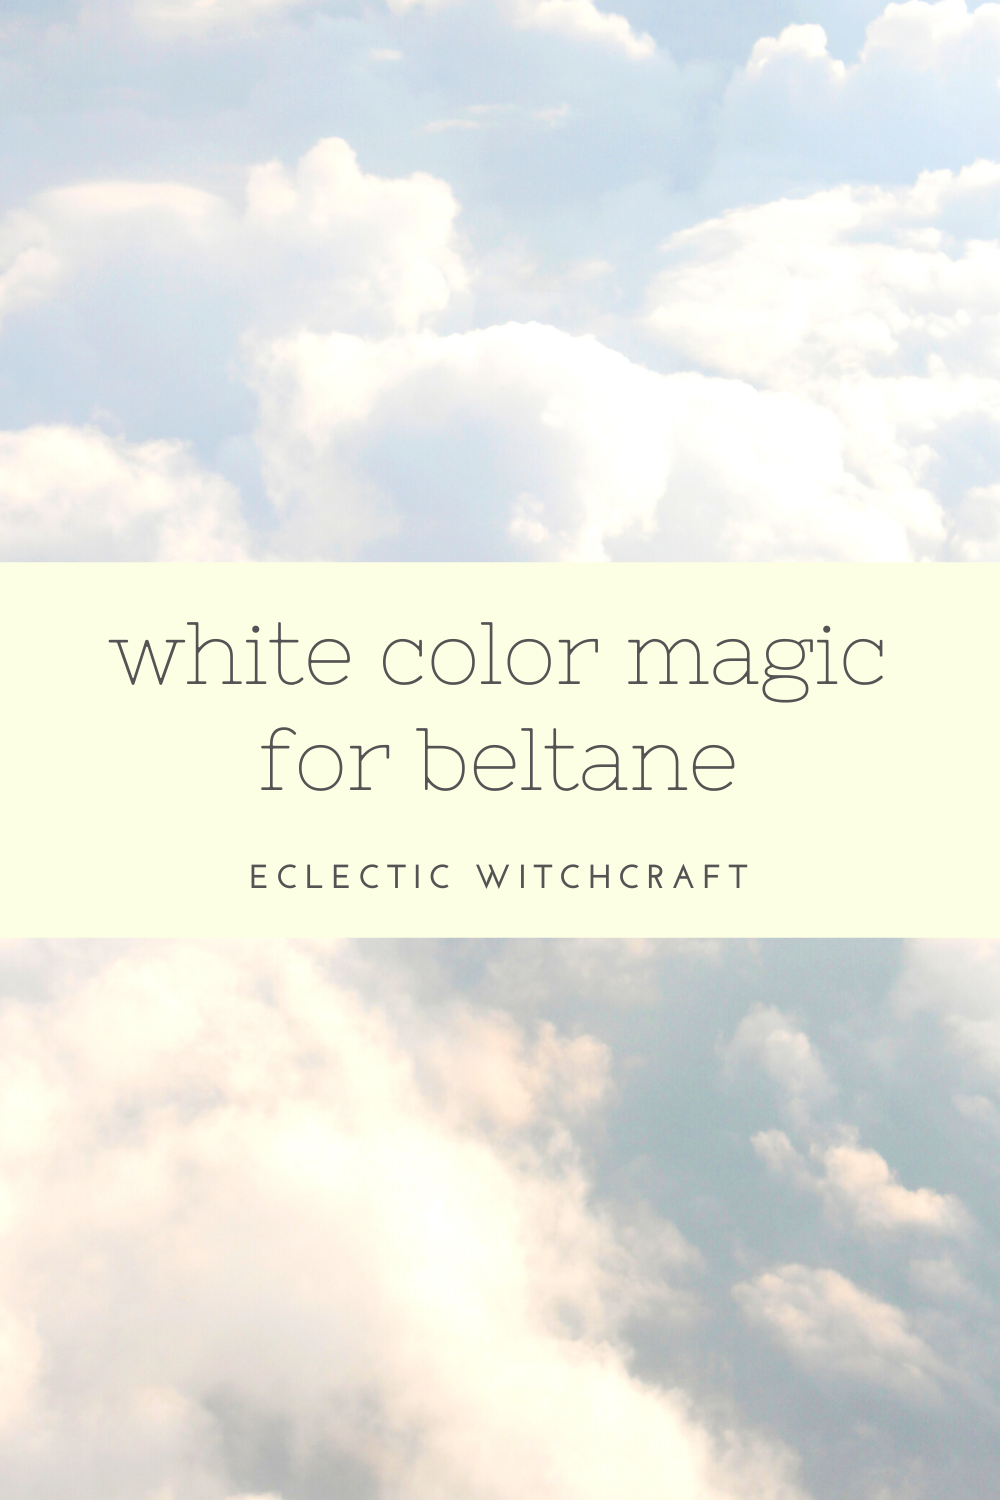 White color magic for Beltane.